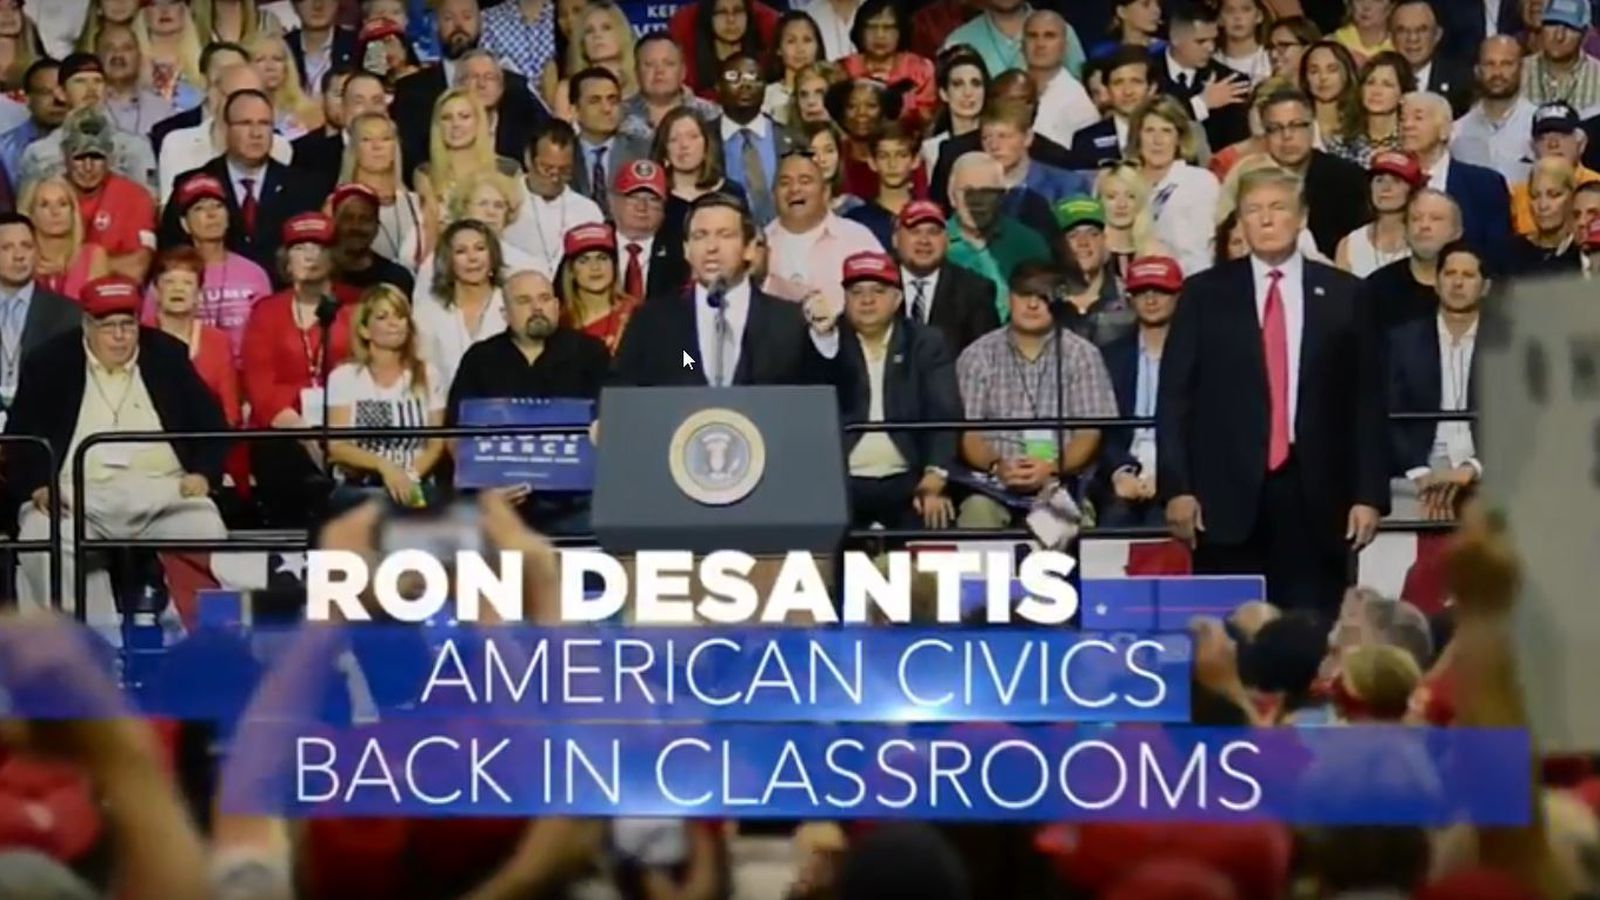 New Desantis Tv Ad Uses Footage From Trump Tampa Rally